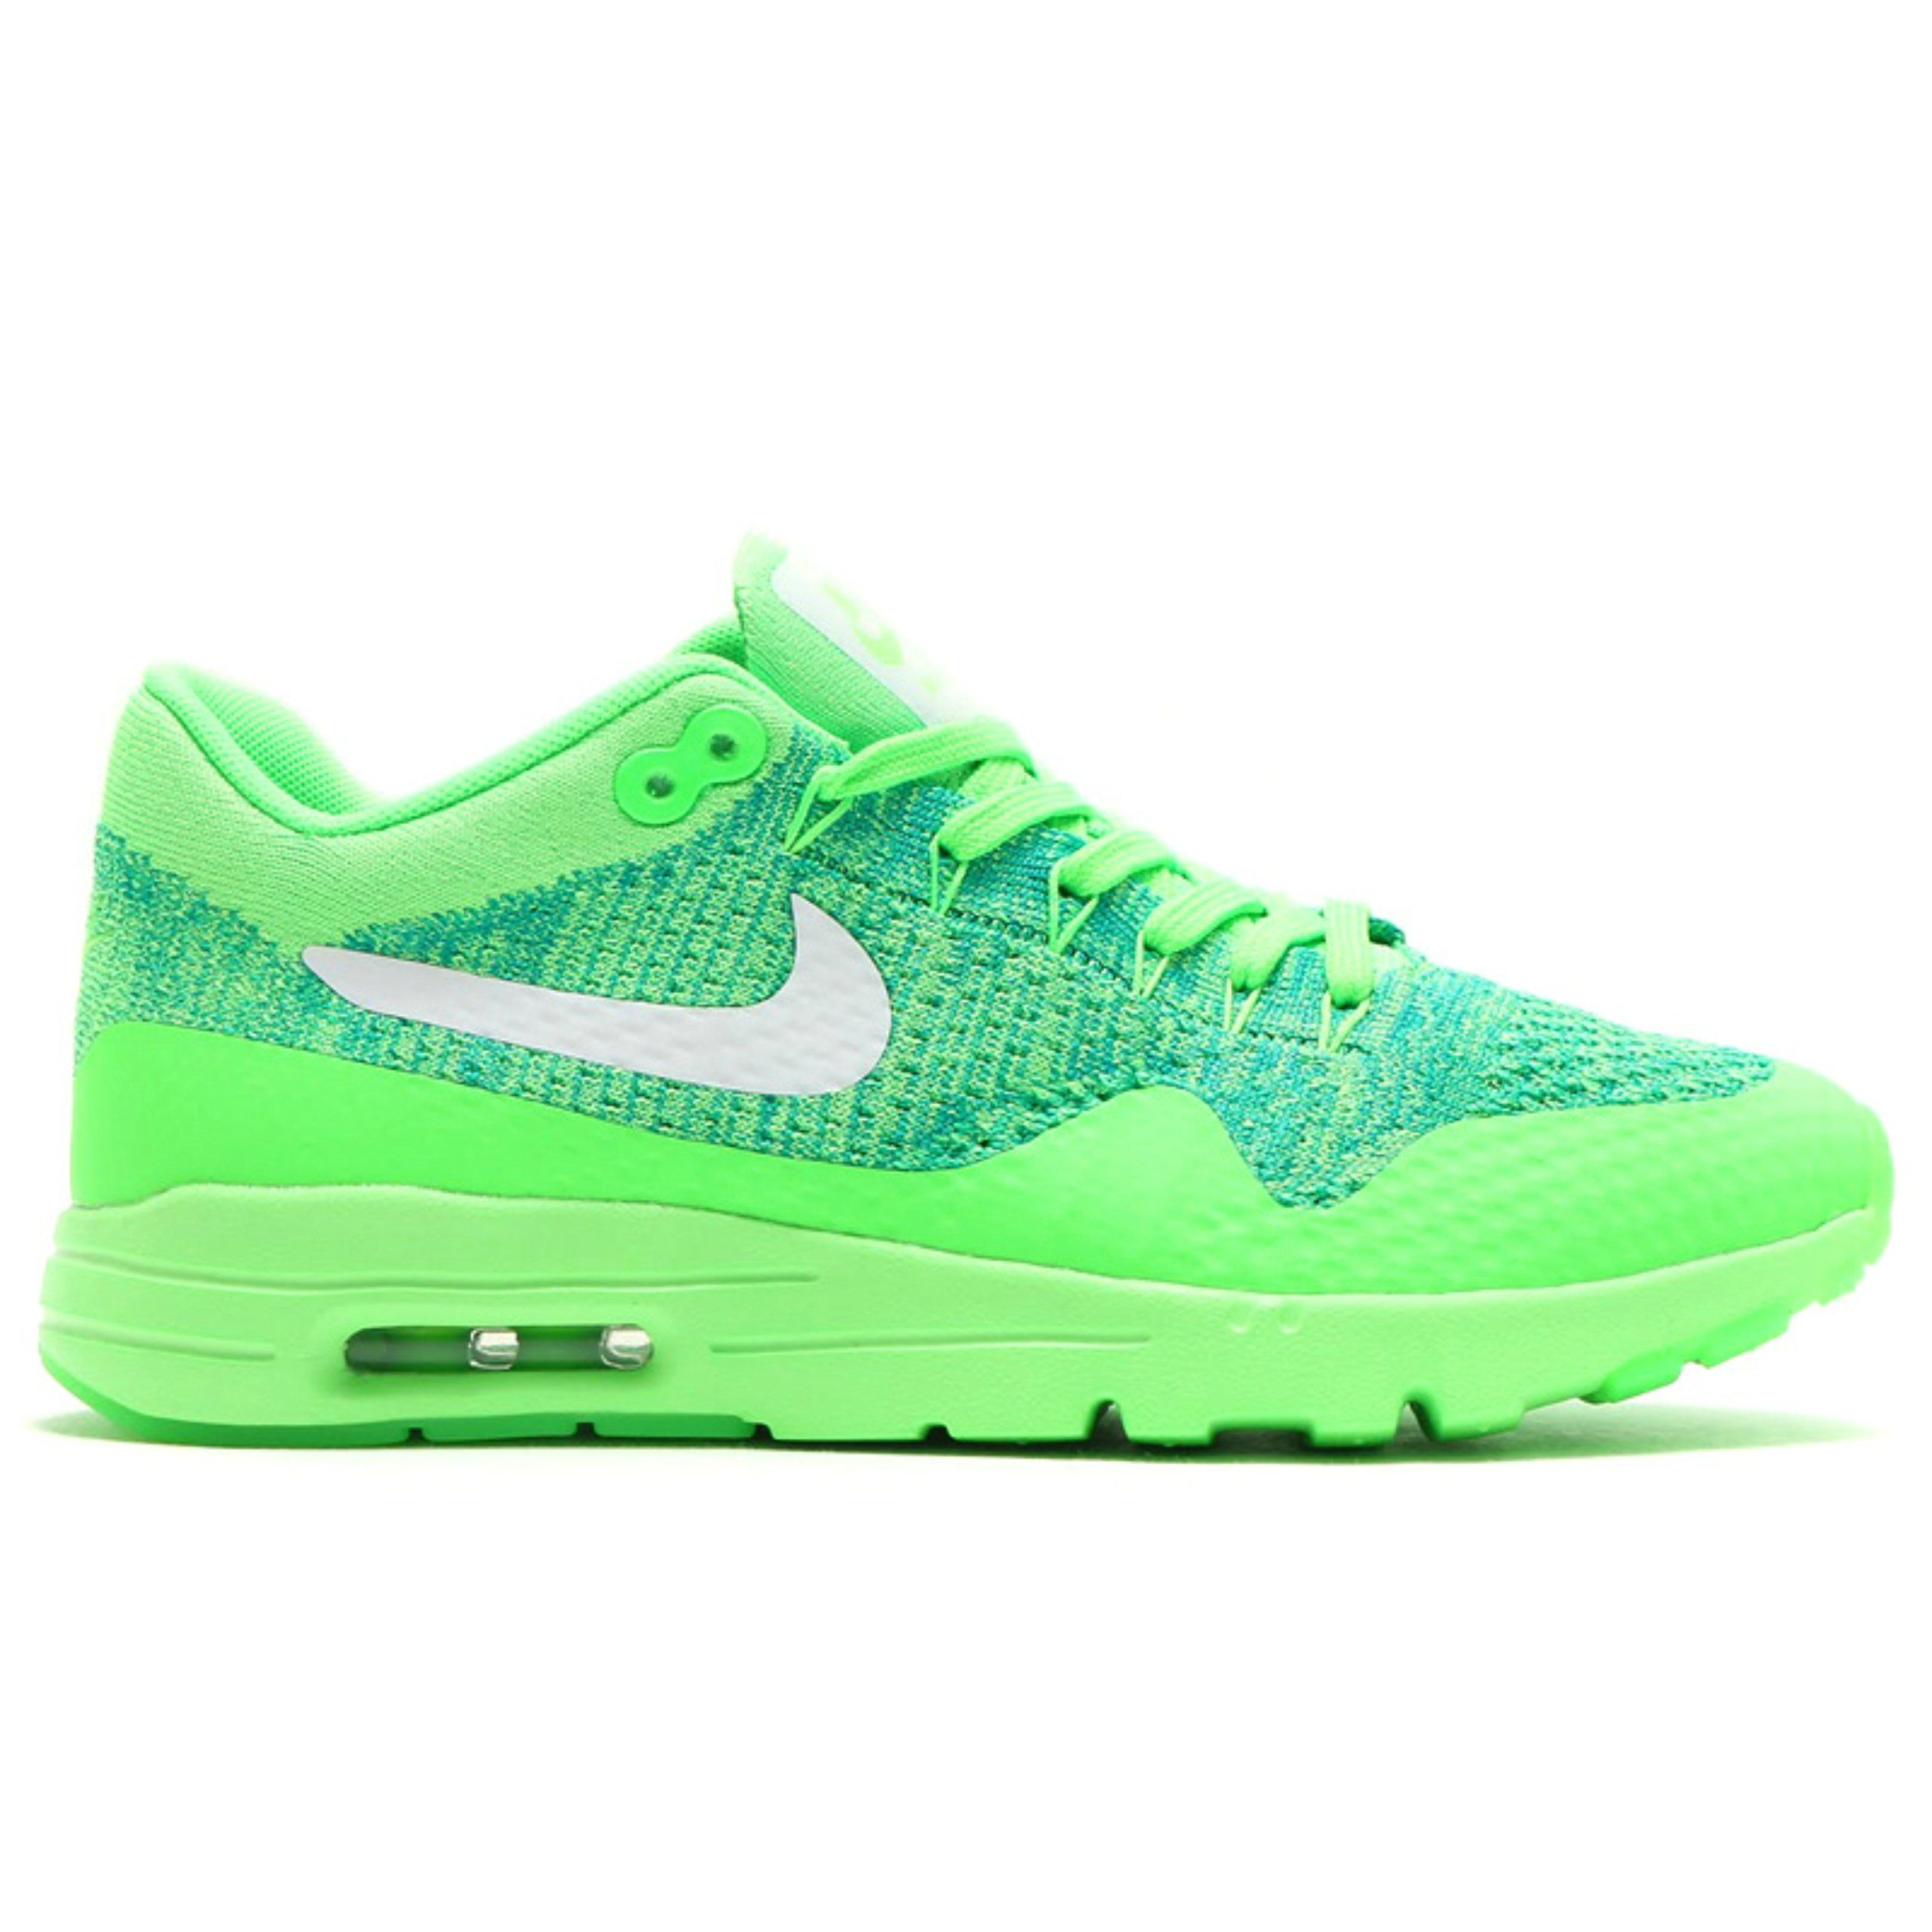 6de3cebf527b Nike Womens Air Max 1 Ultra Flyknit Running Trainers 843387 Sneakers Shoes  (US 10